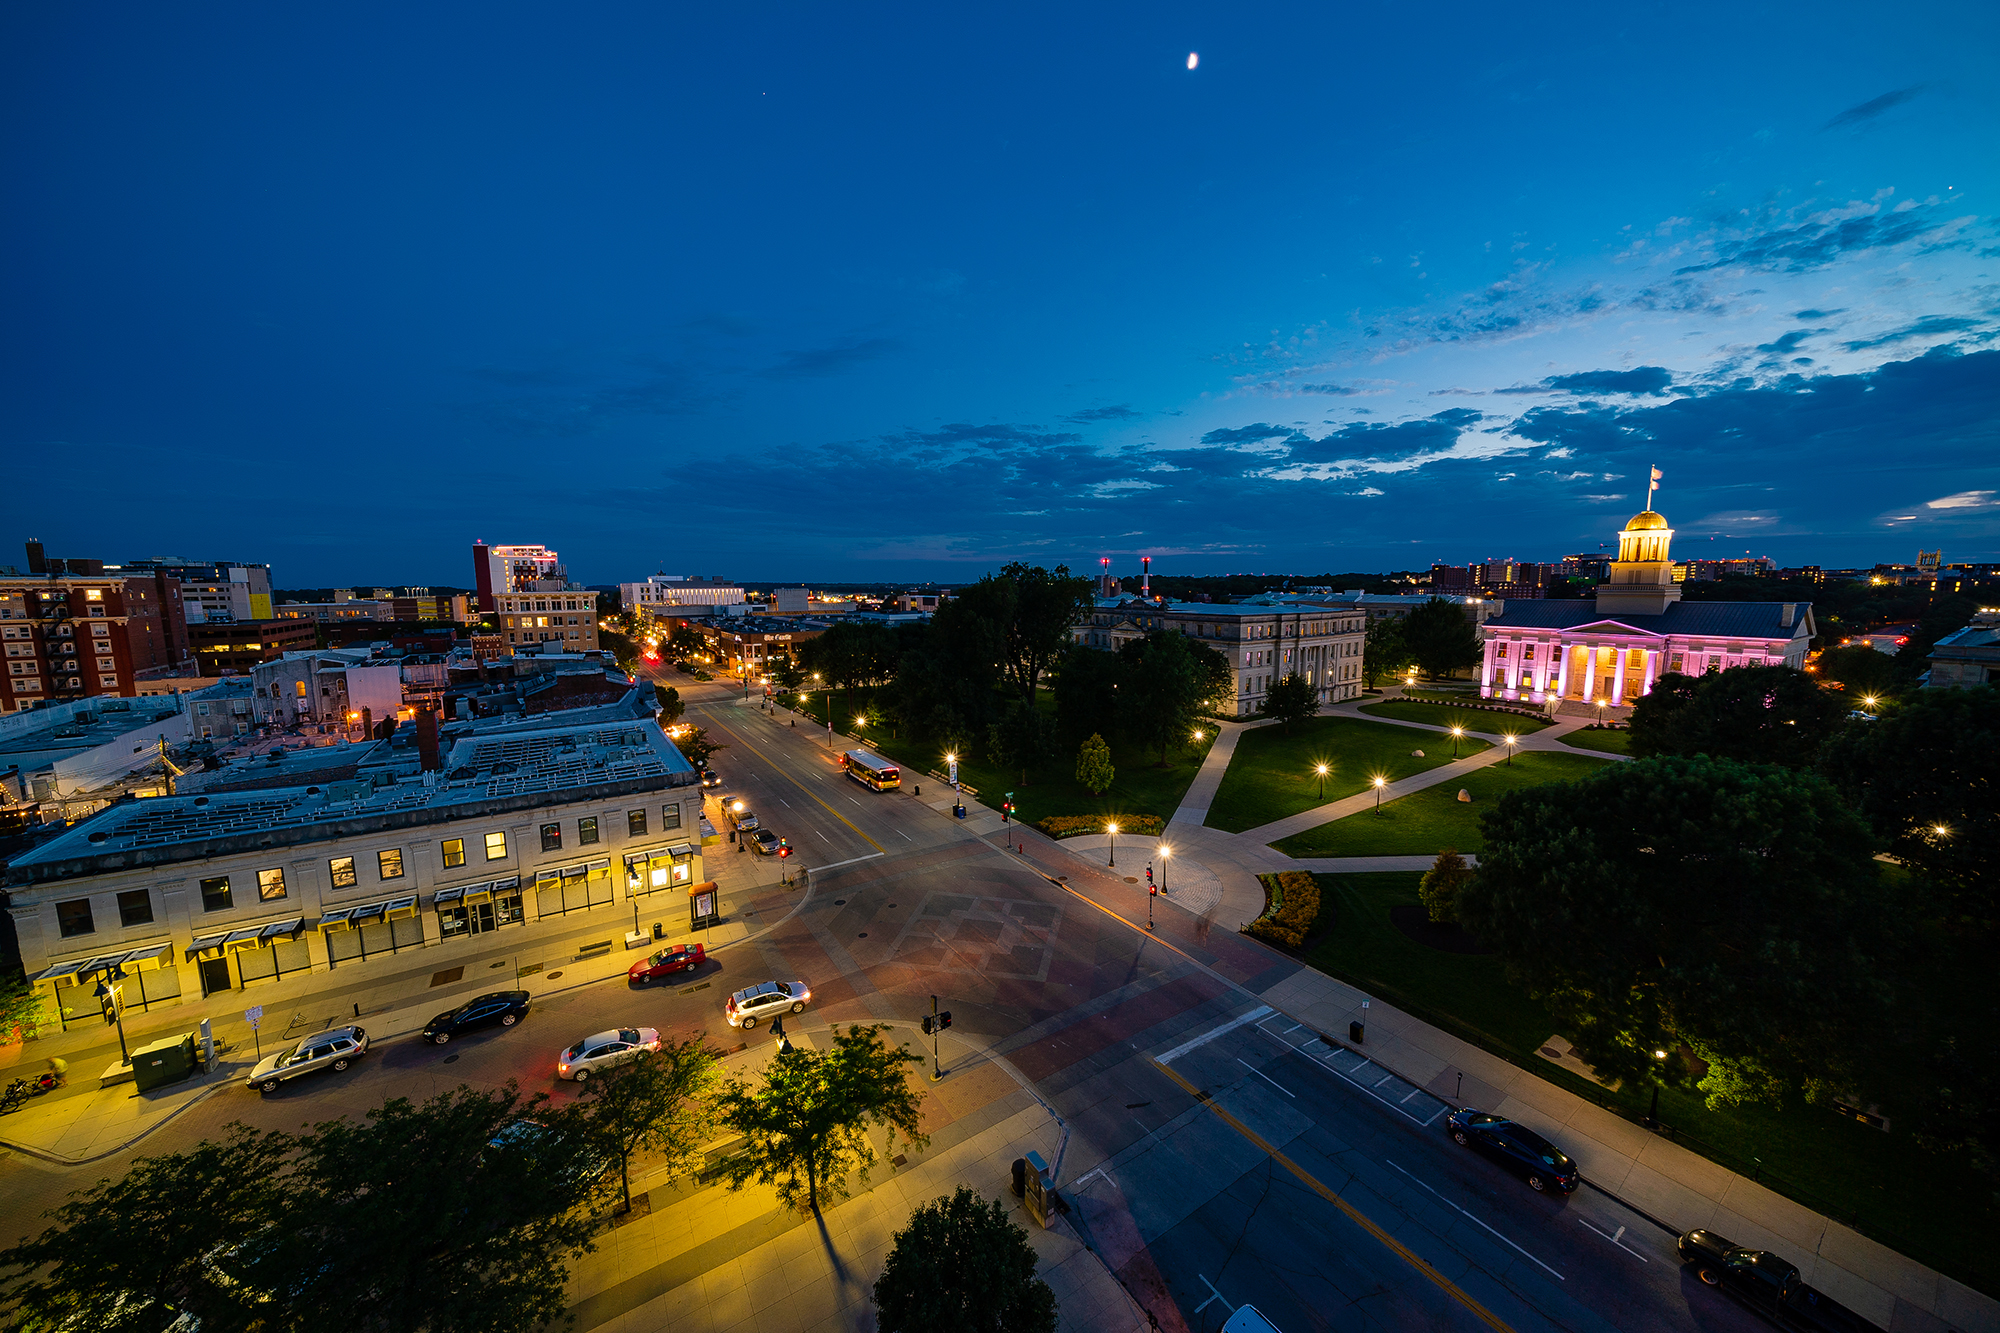 view of the university of iowa campus from a rooftop